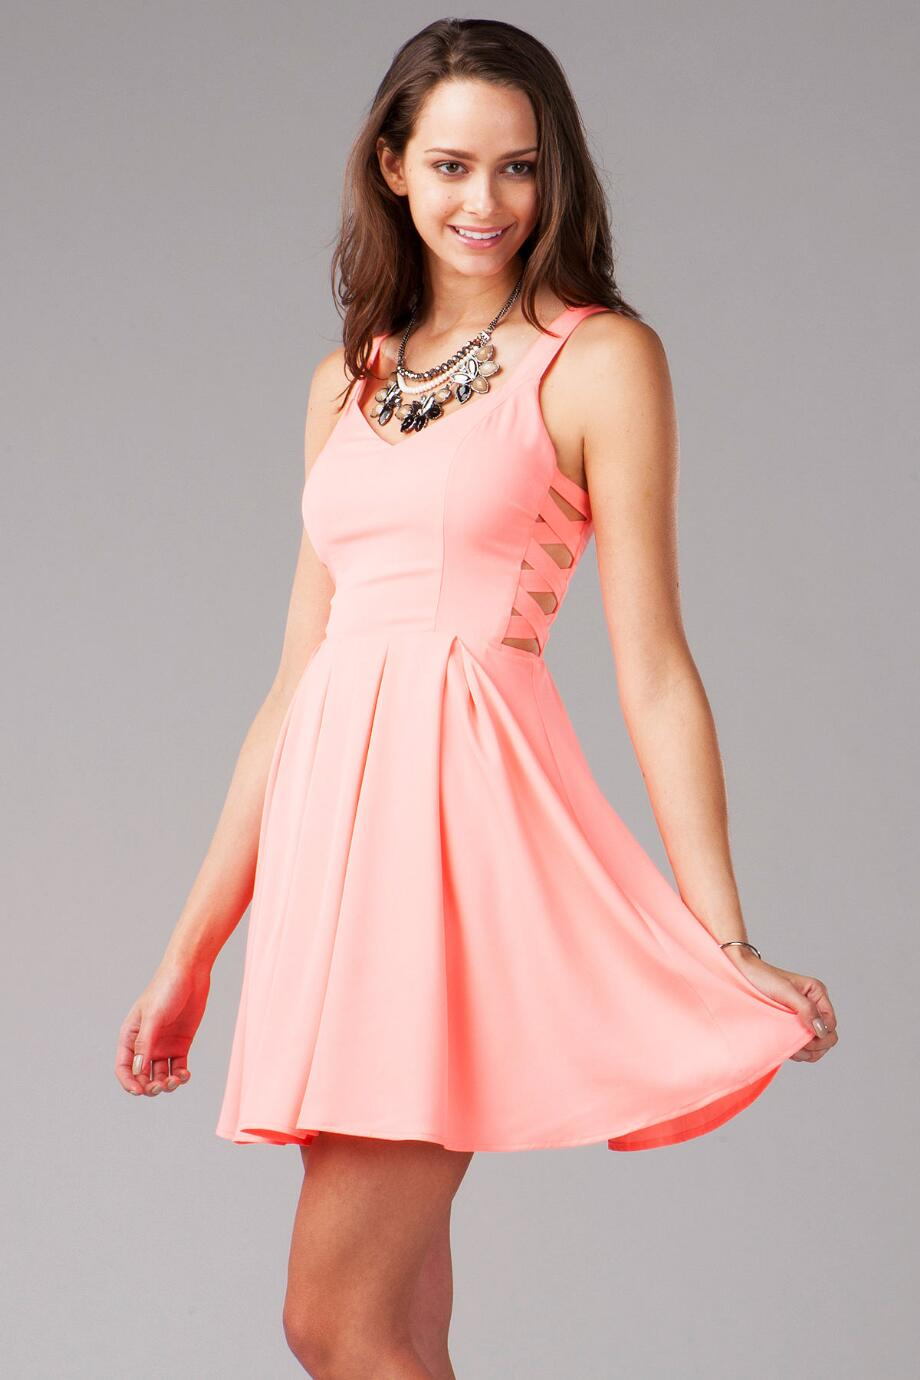 Kennett Cutout Dress